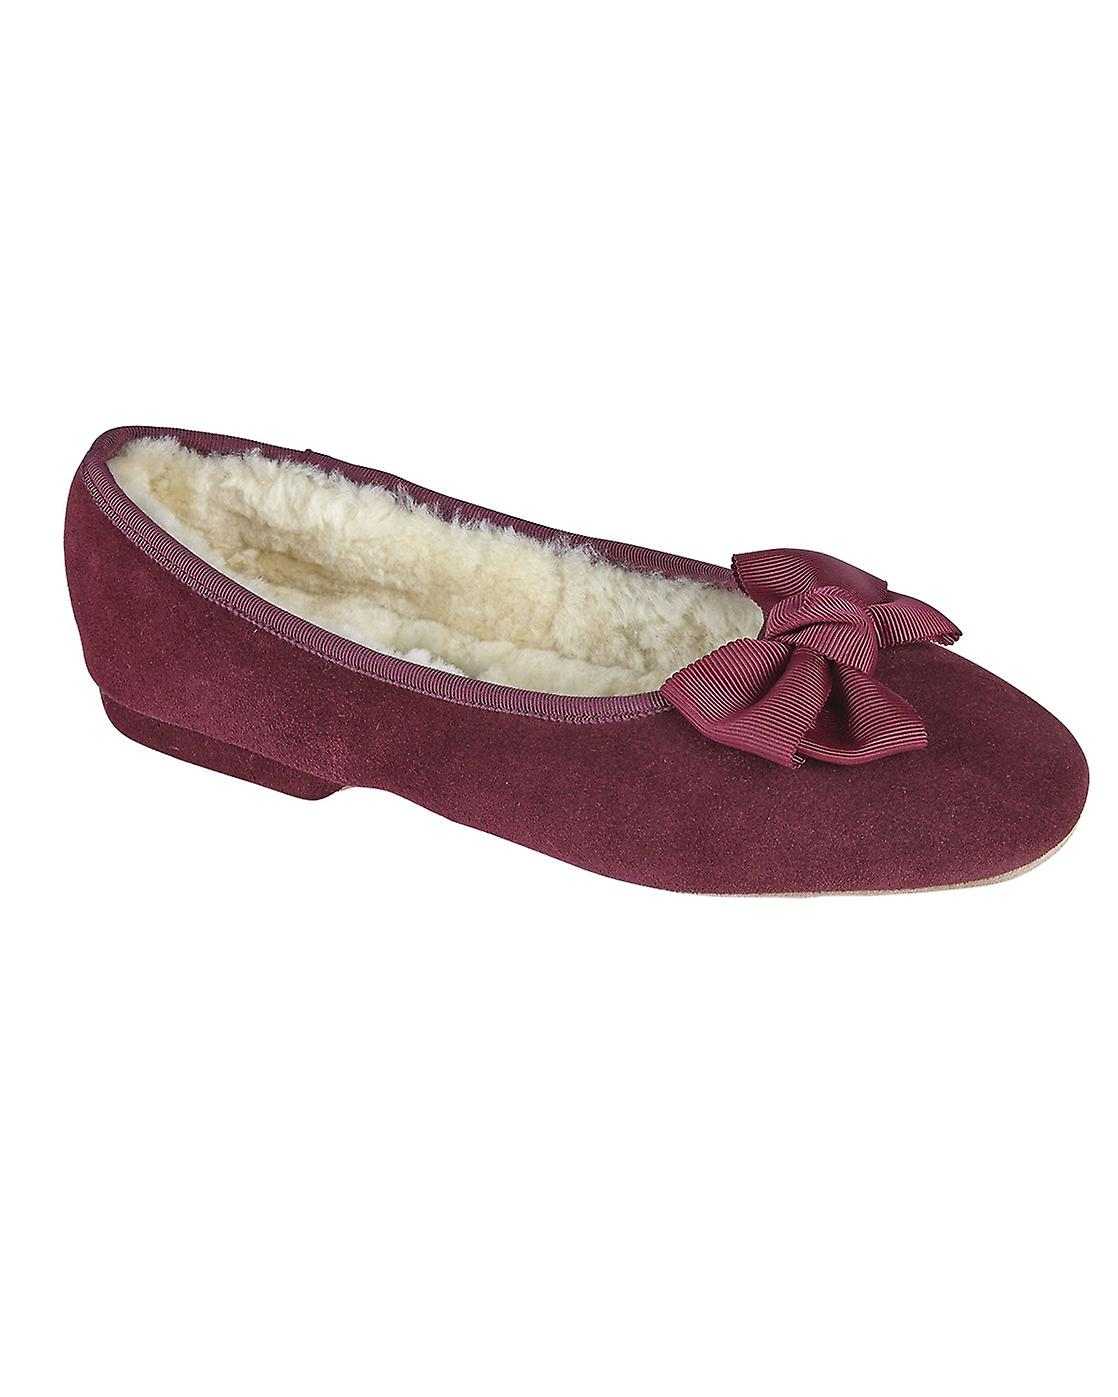 Ladies Ballerina Sheepskin Slippers - Damson